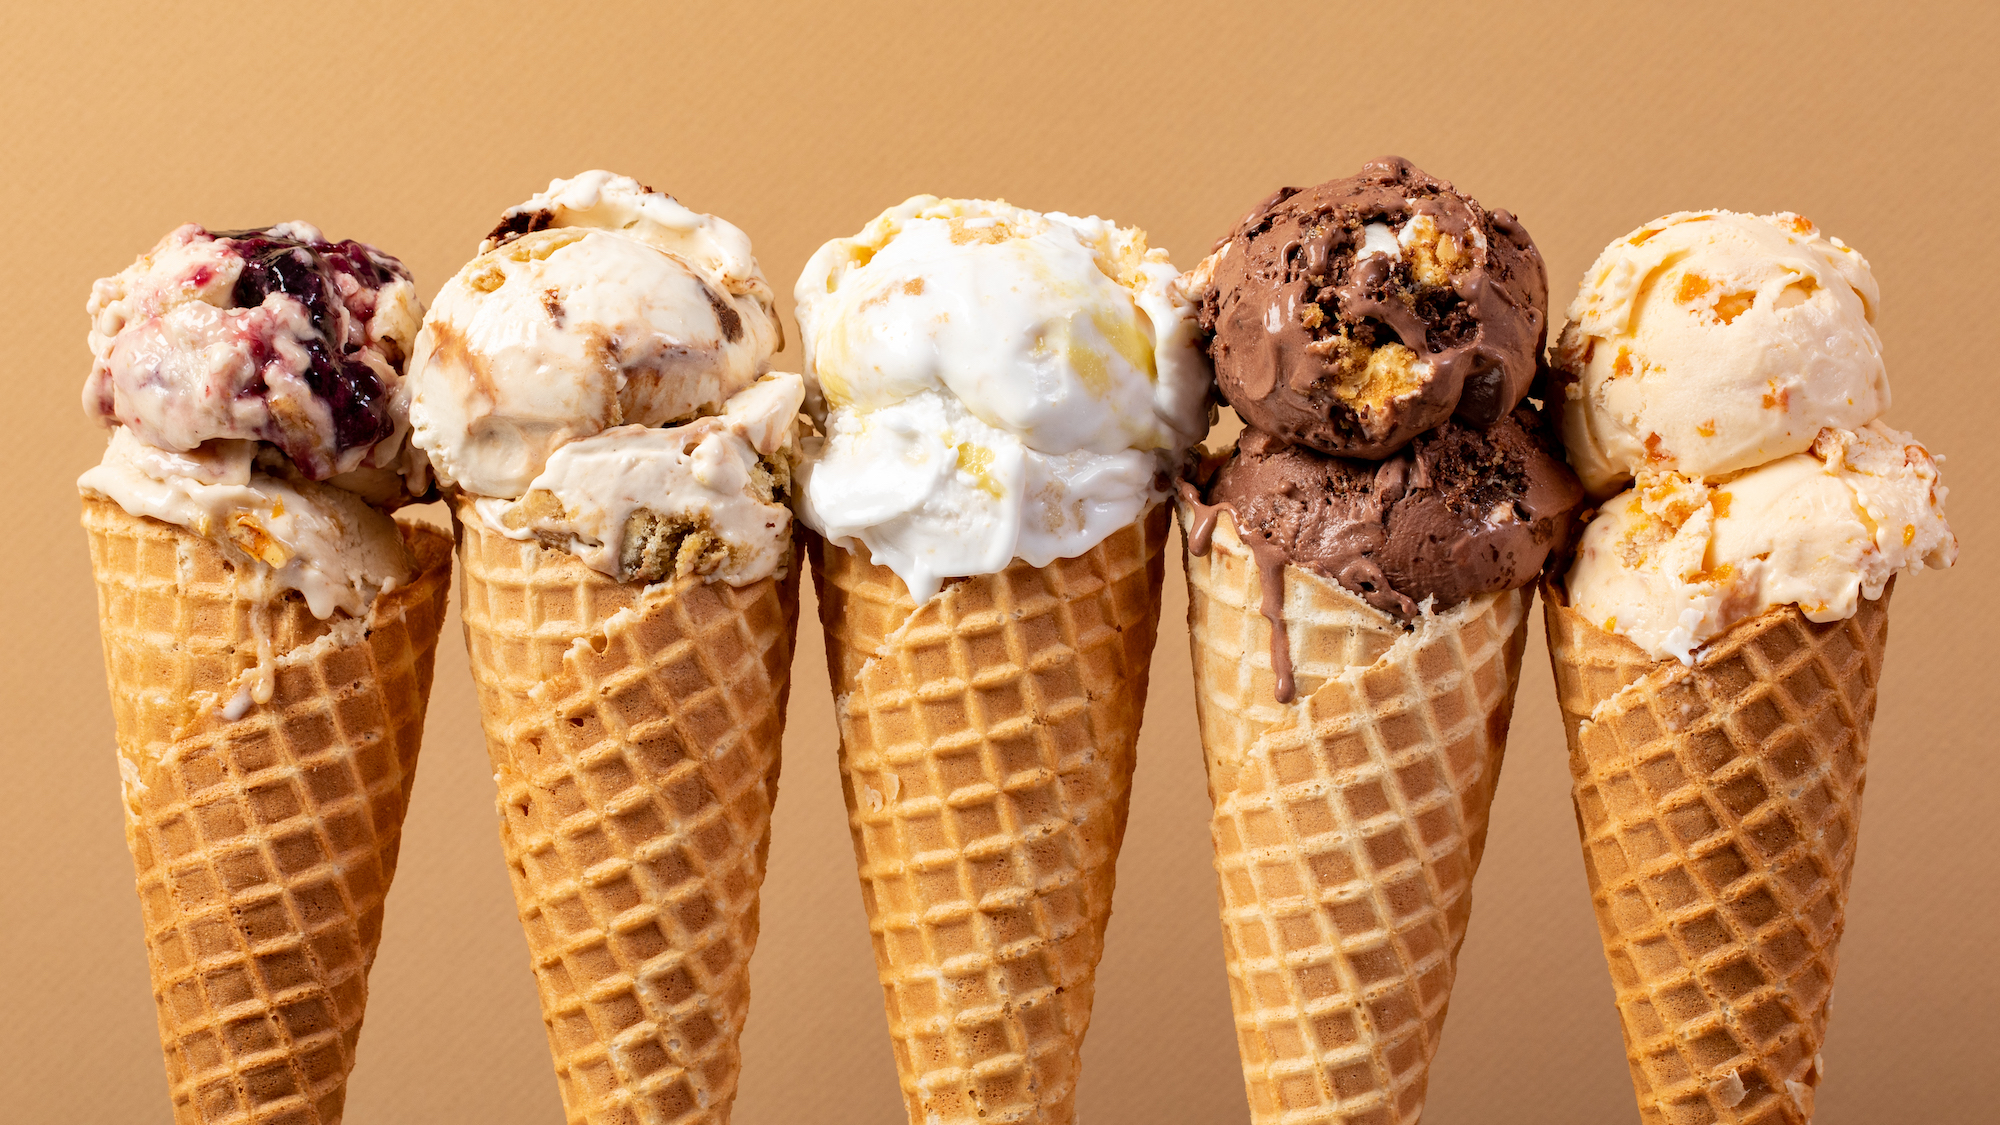 Ice cream of varying flavors drip down on waffle cones.